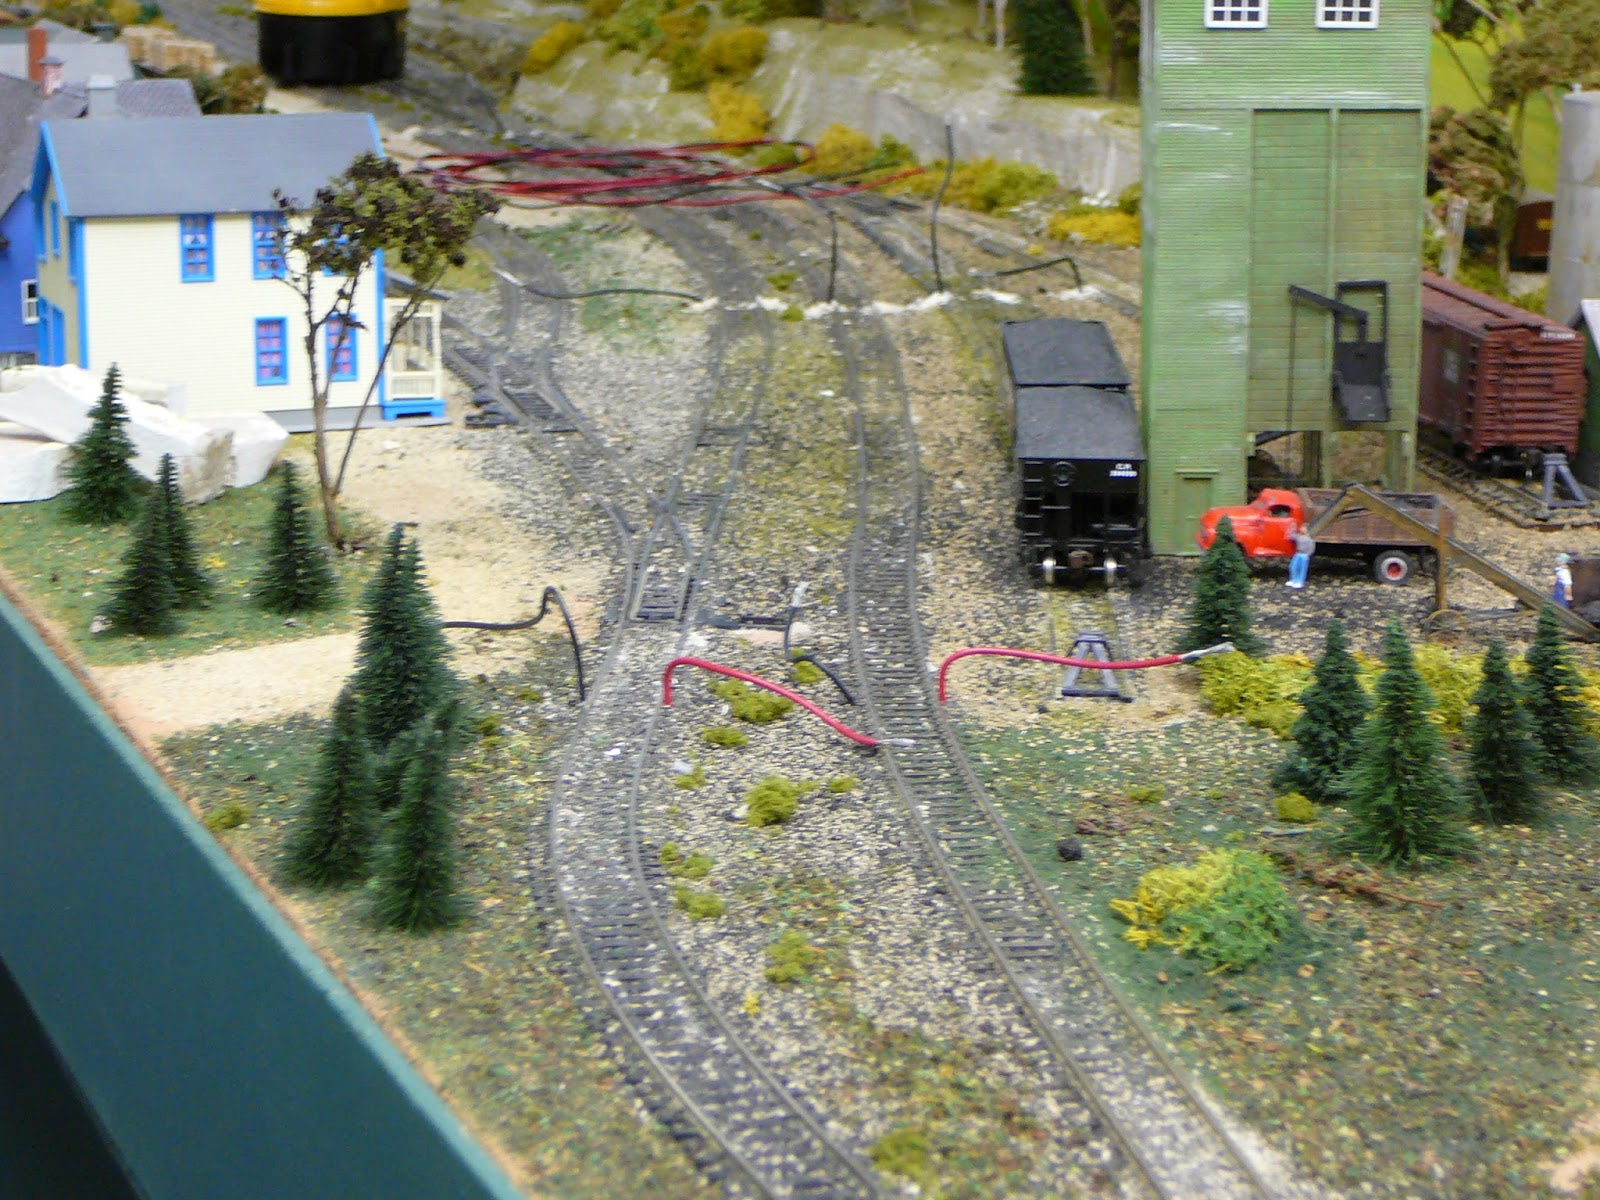 Woodstock Model Railroad Sunday Fun Wiring Track More Ground Cover Added And All The Tracks Turnouts Cleaned Excess Ballest Removed Feeder Wires Were Also A Test Showed Much Improved